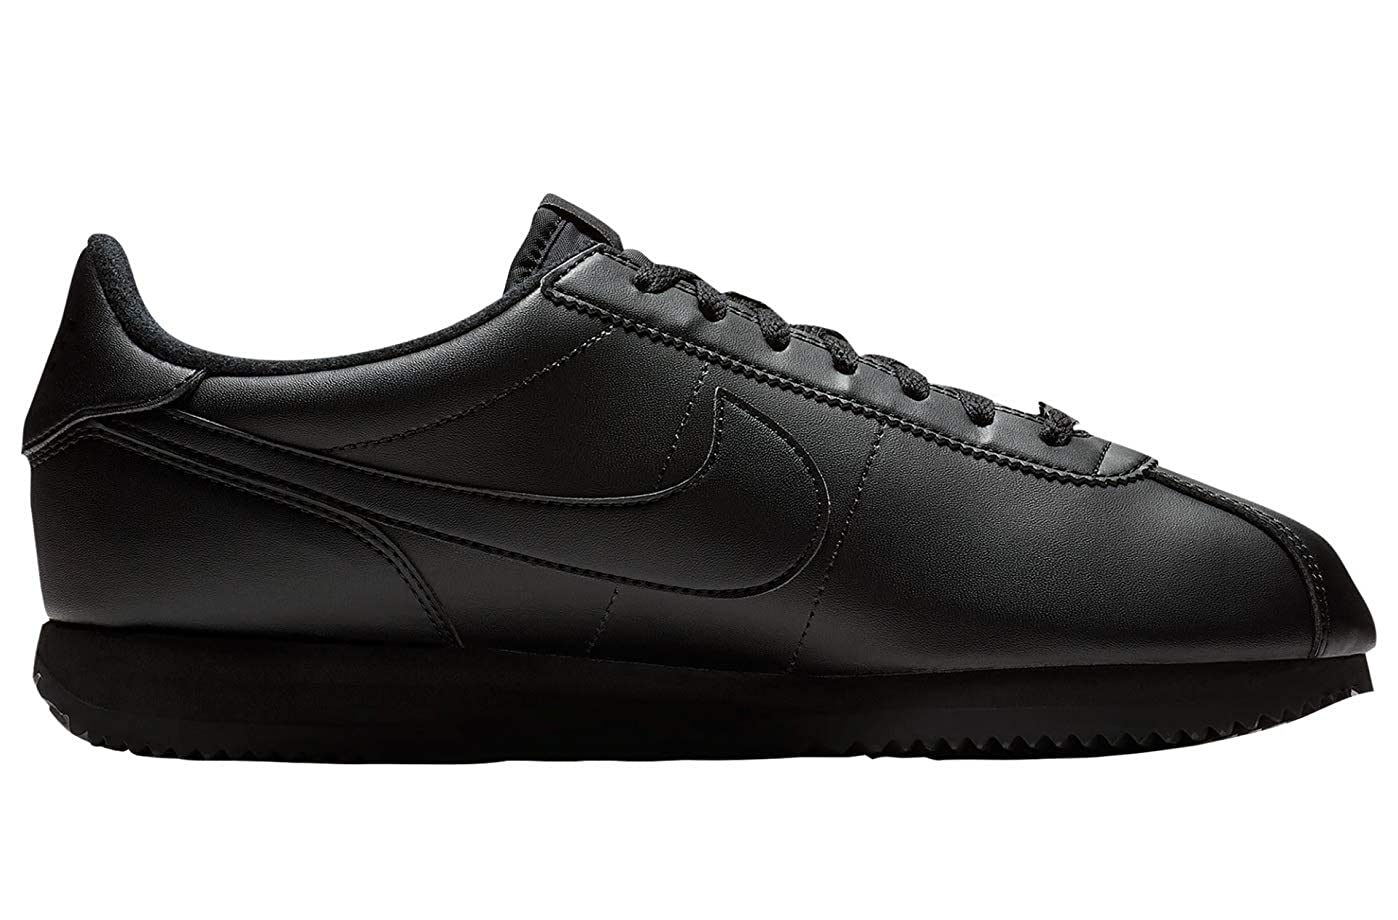 separation shoes e2c56 0fac7 Amazon.com   Nike Men s Classic Cortez Leather Casual Shoe   Fashion  Sneakers